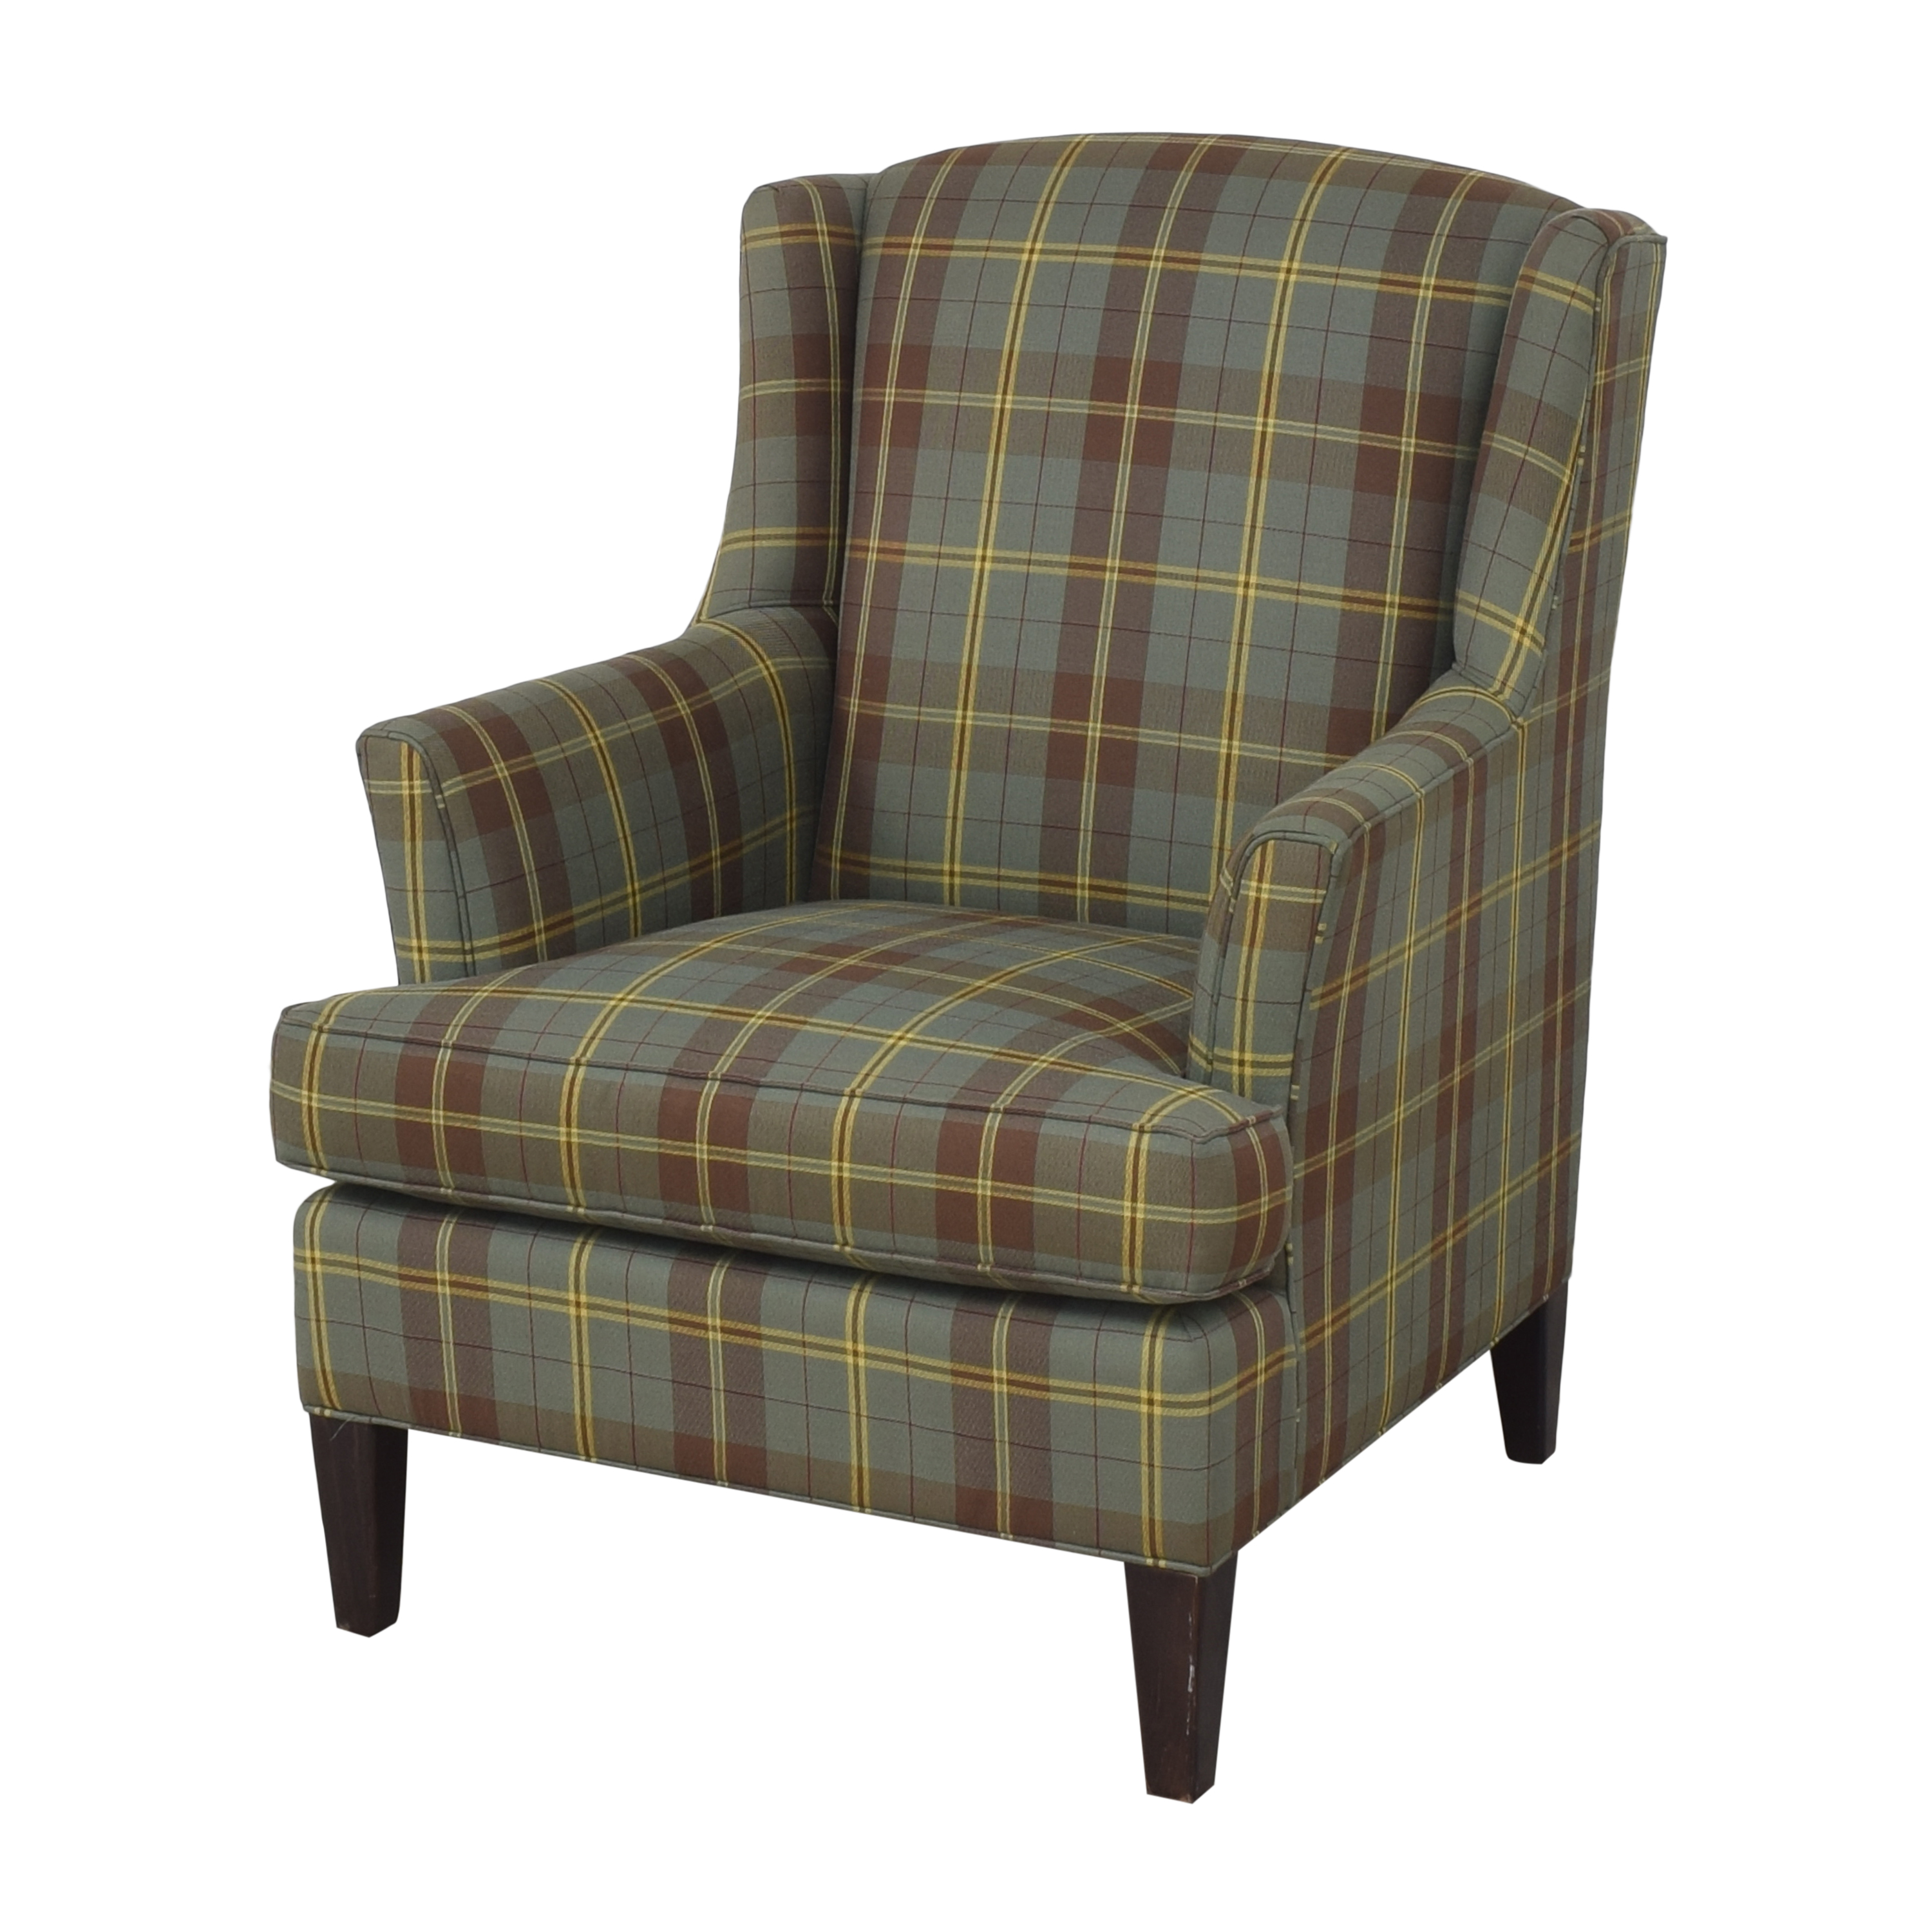 Crate & Barrel Wingback Armchair / Accent Chairs